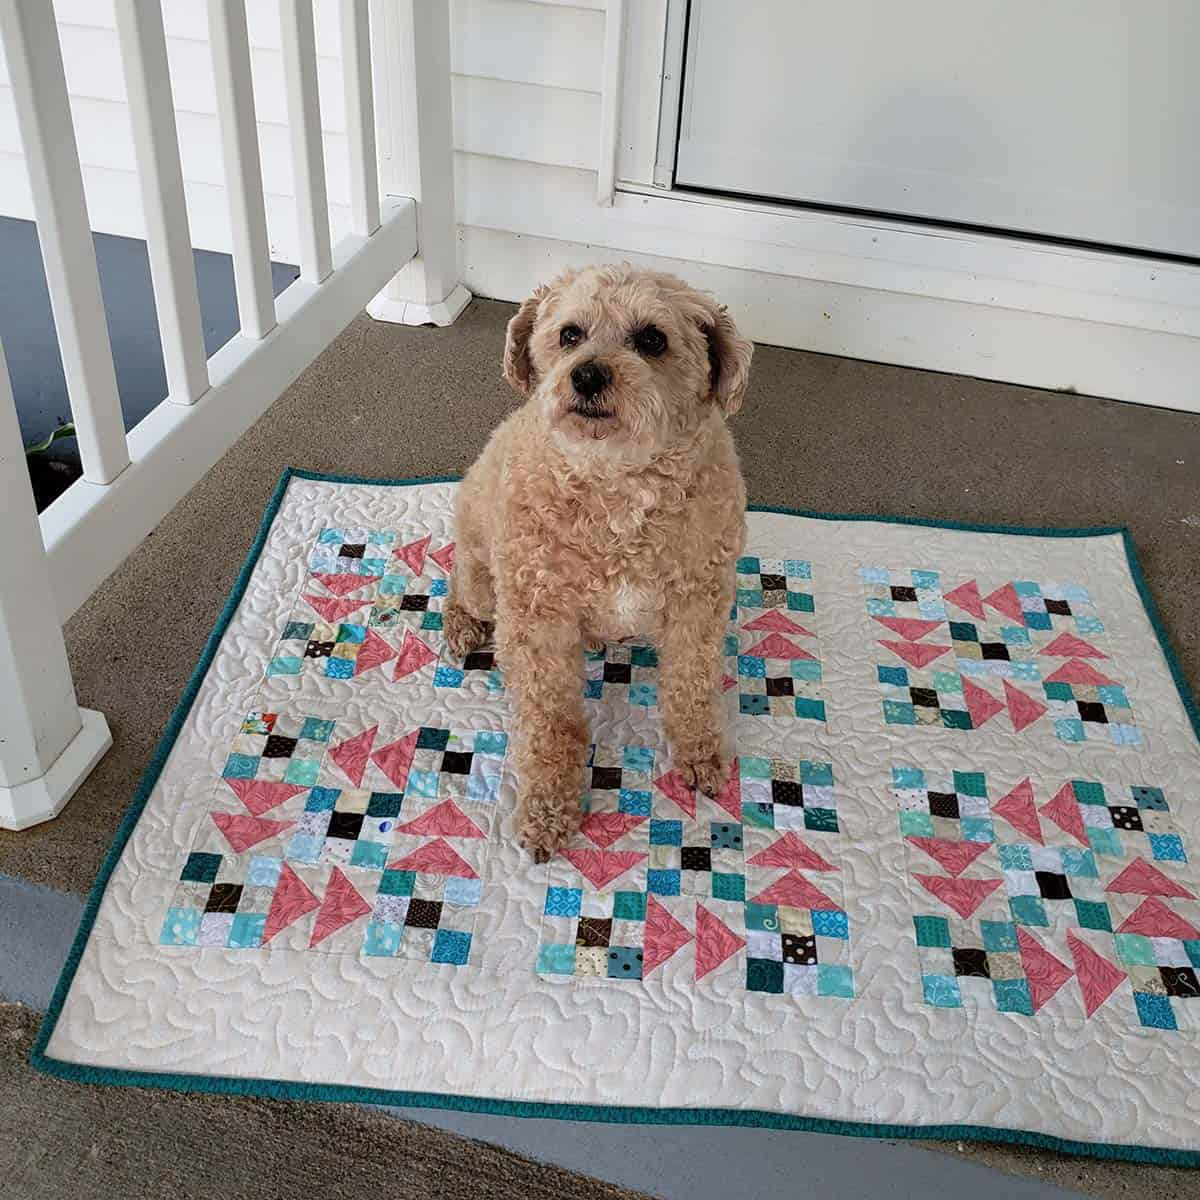 Mr. Mickey on the baby quilt